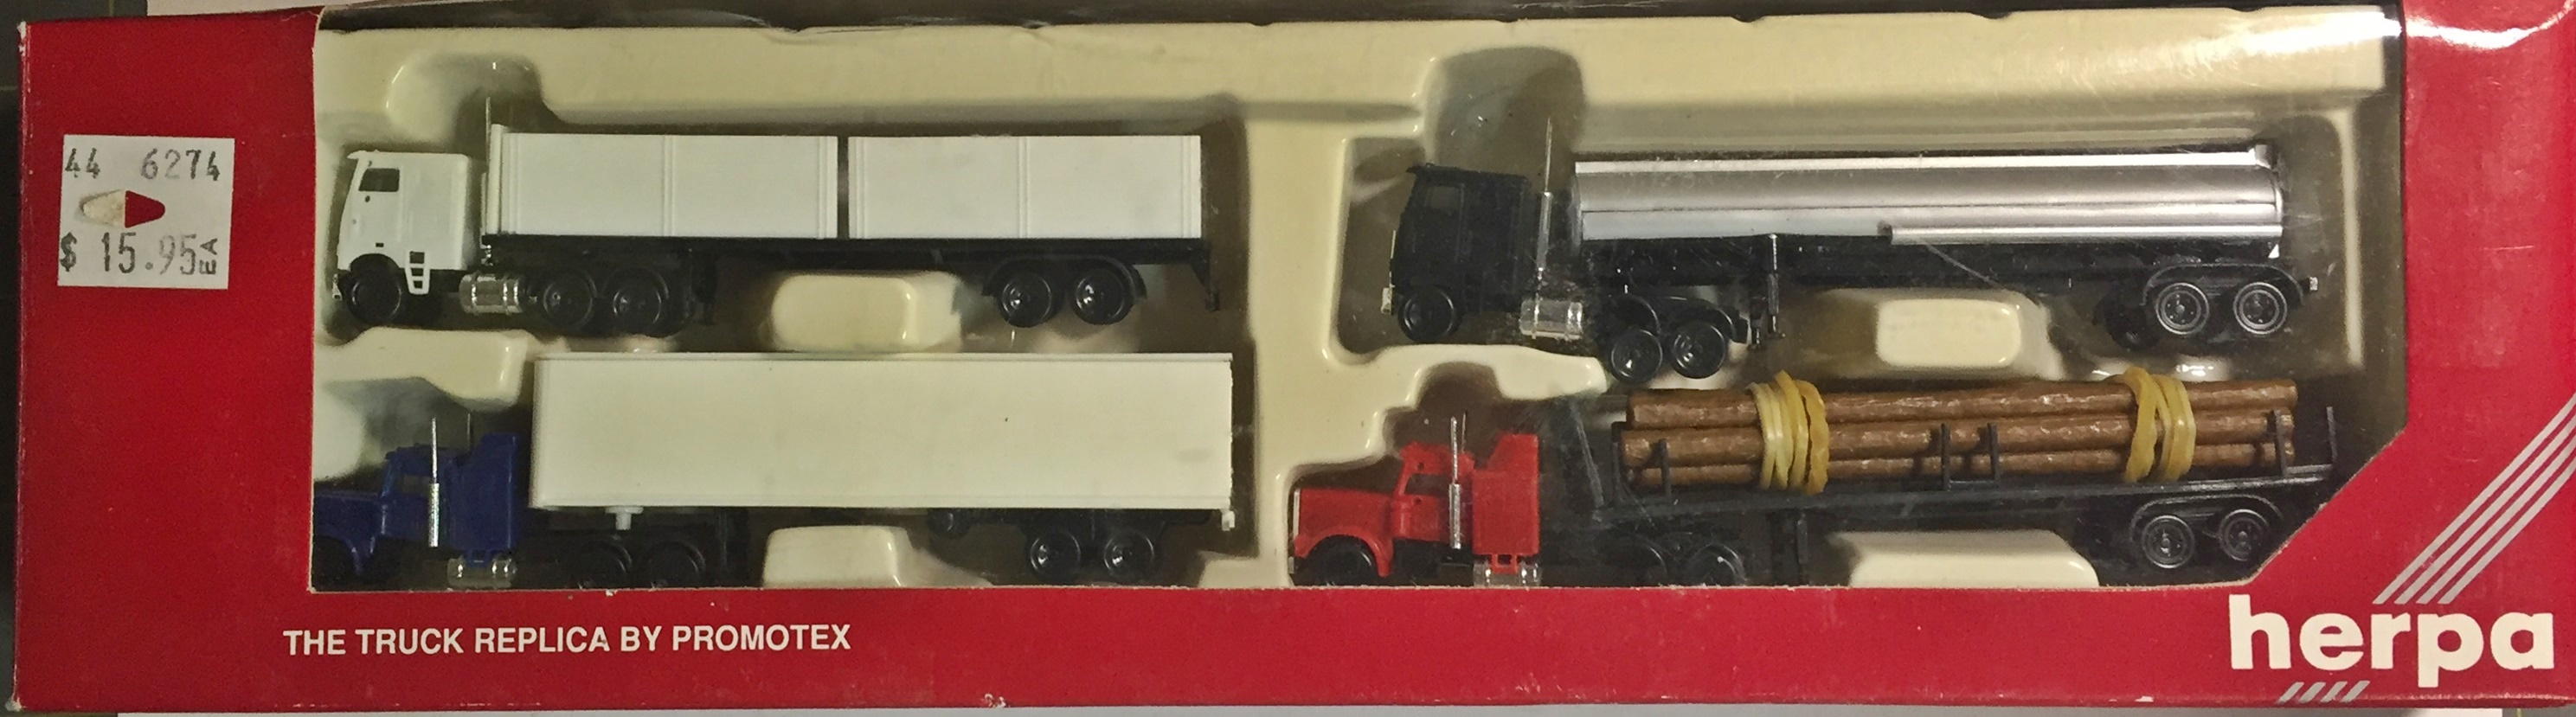 N Scale - Herpa - 6274-4 - Tractor-Trailer, Modern - Painted/Unlettered